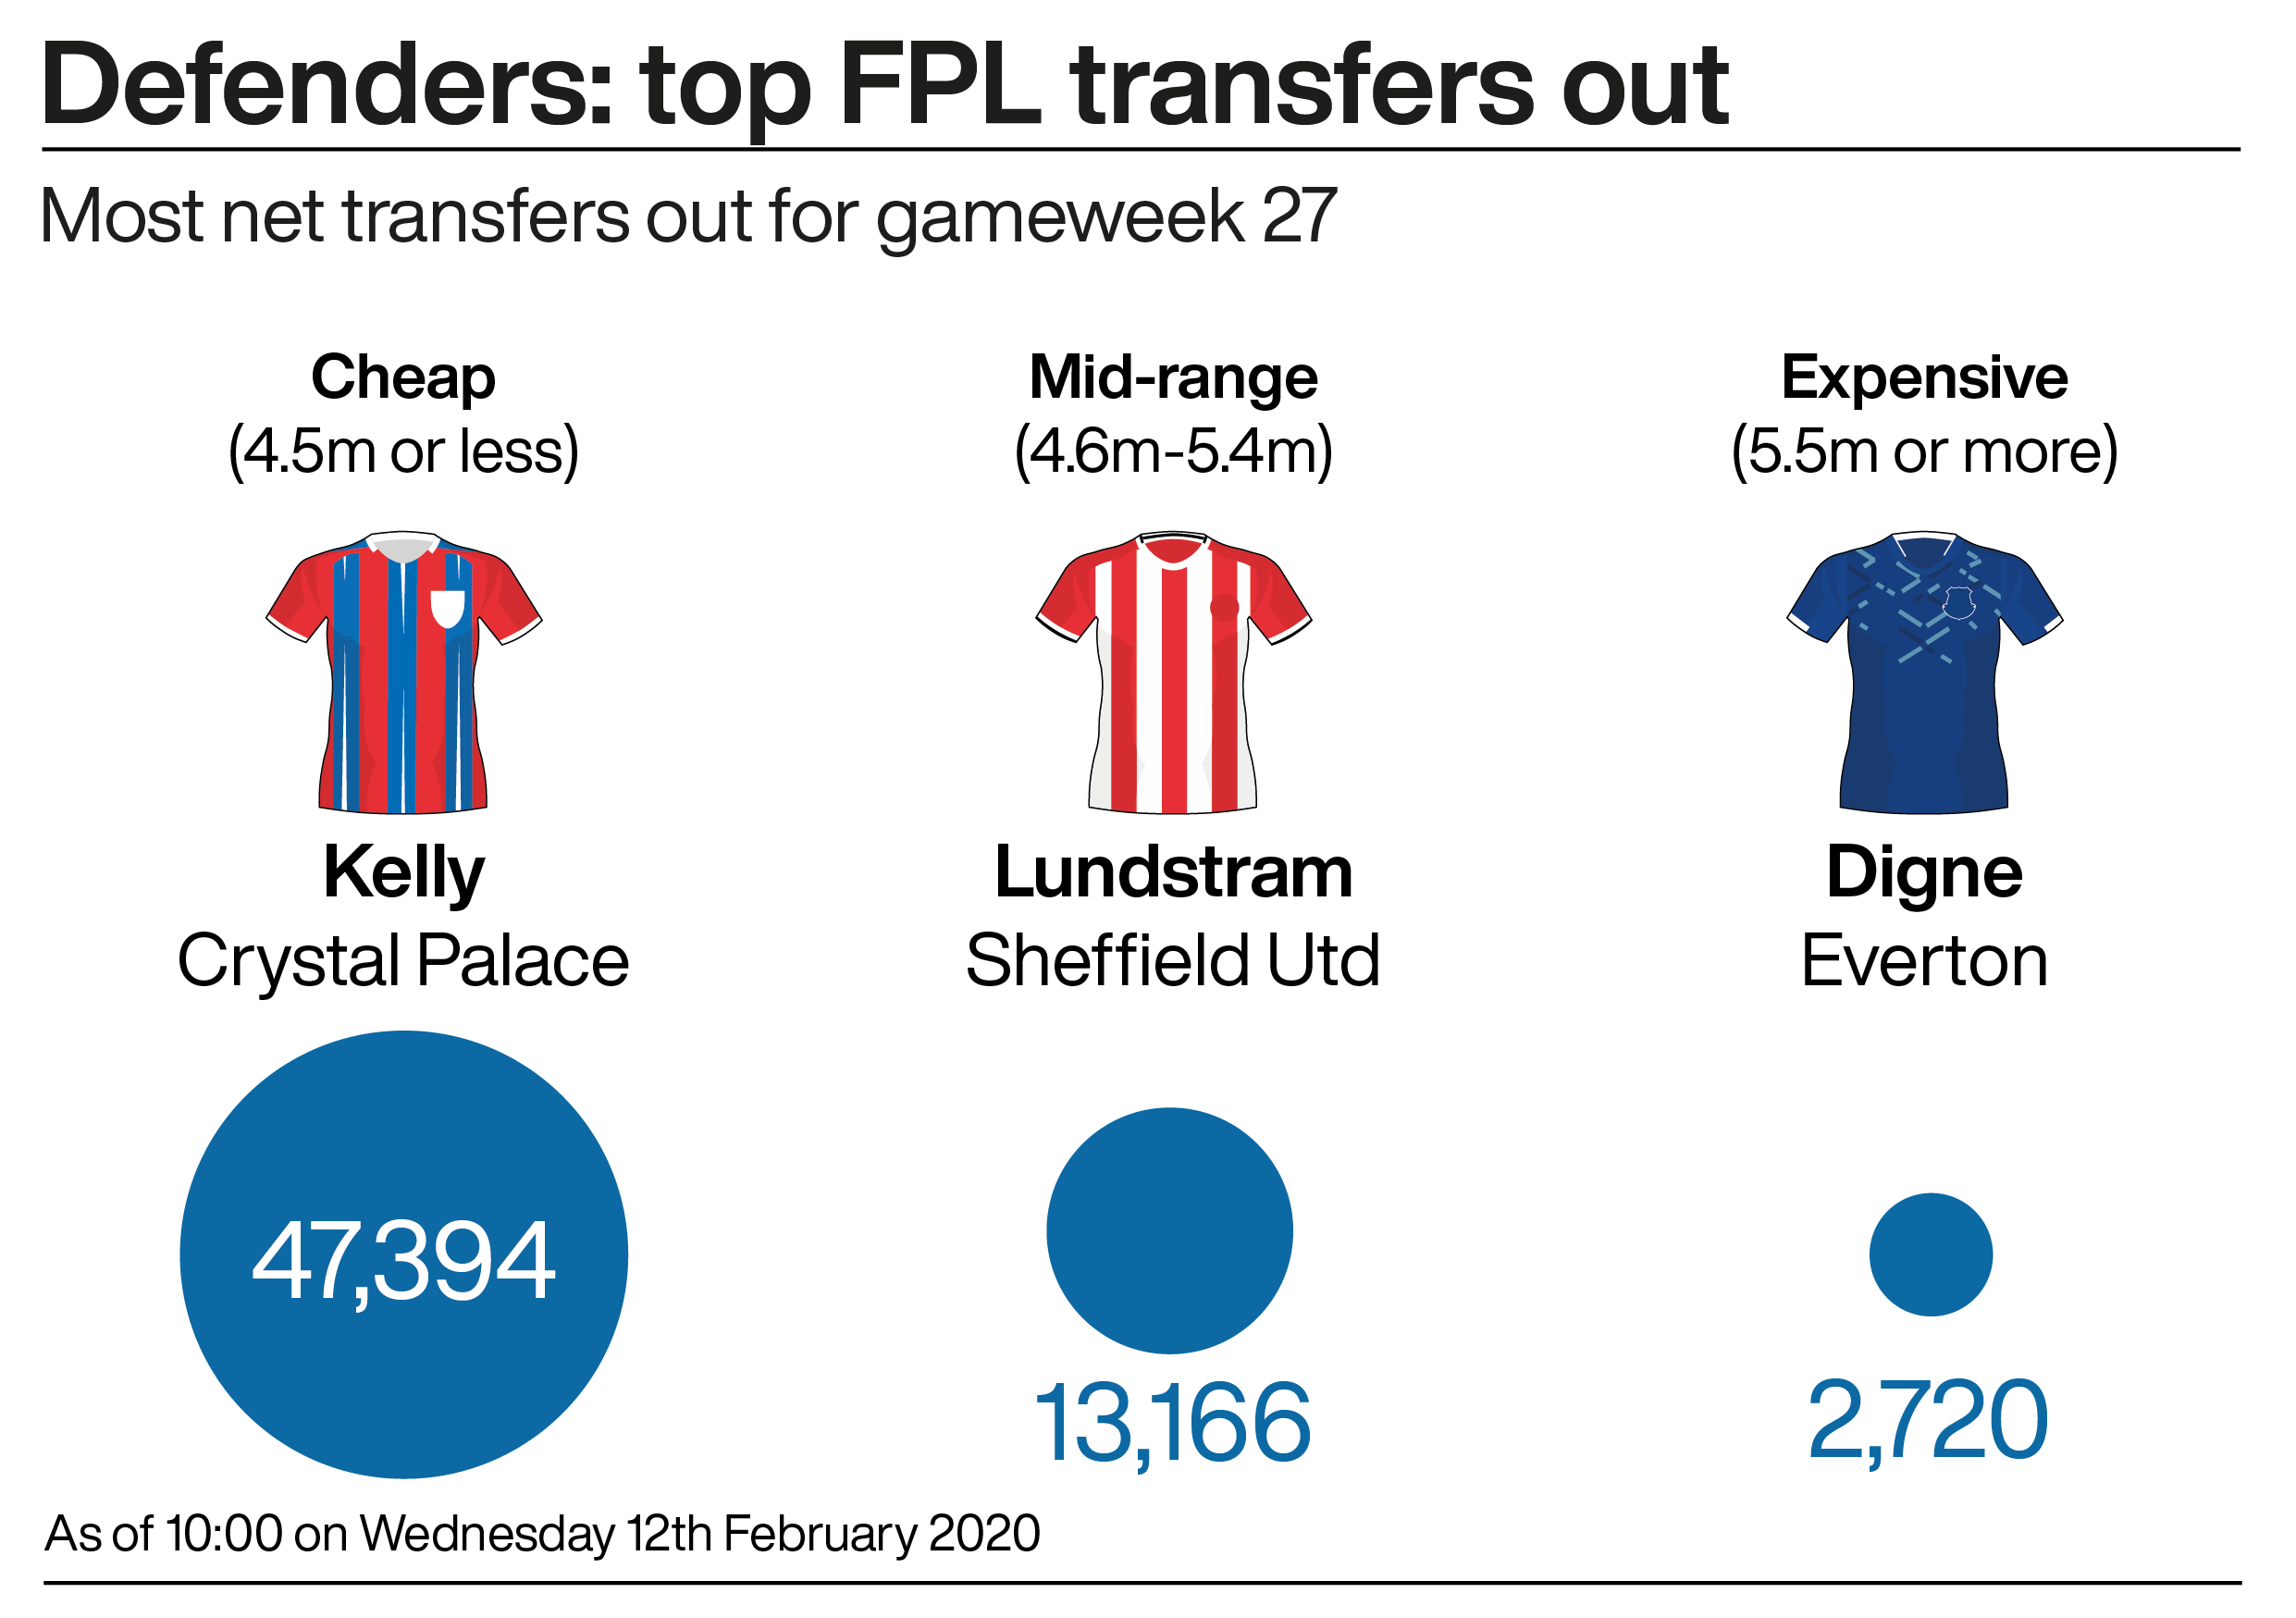 A graphic showing the most popular Fantasy Premier League defenders ahead of gameweek 27